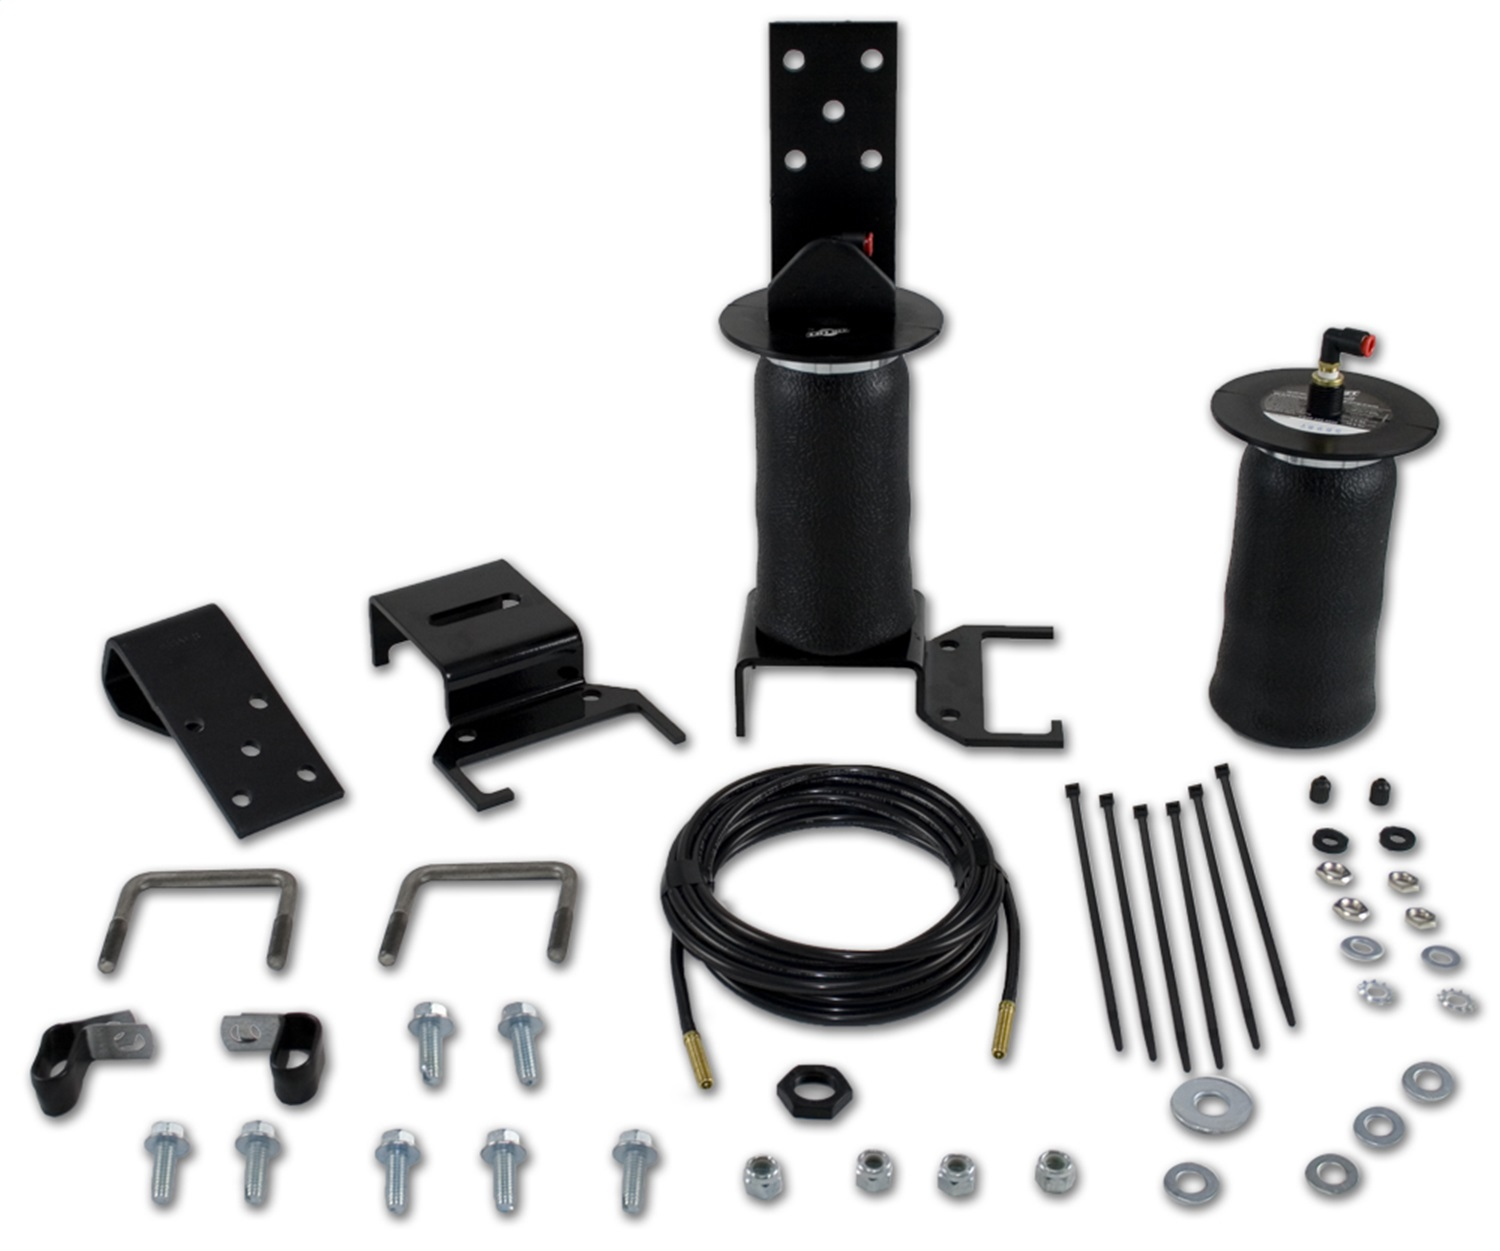 Air Lift 59562 Ride Control Kit Fits 05-15 Xterra